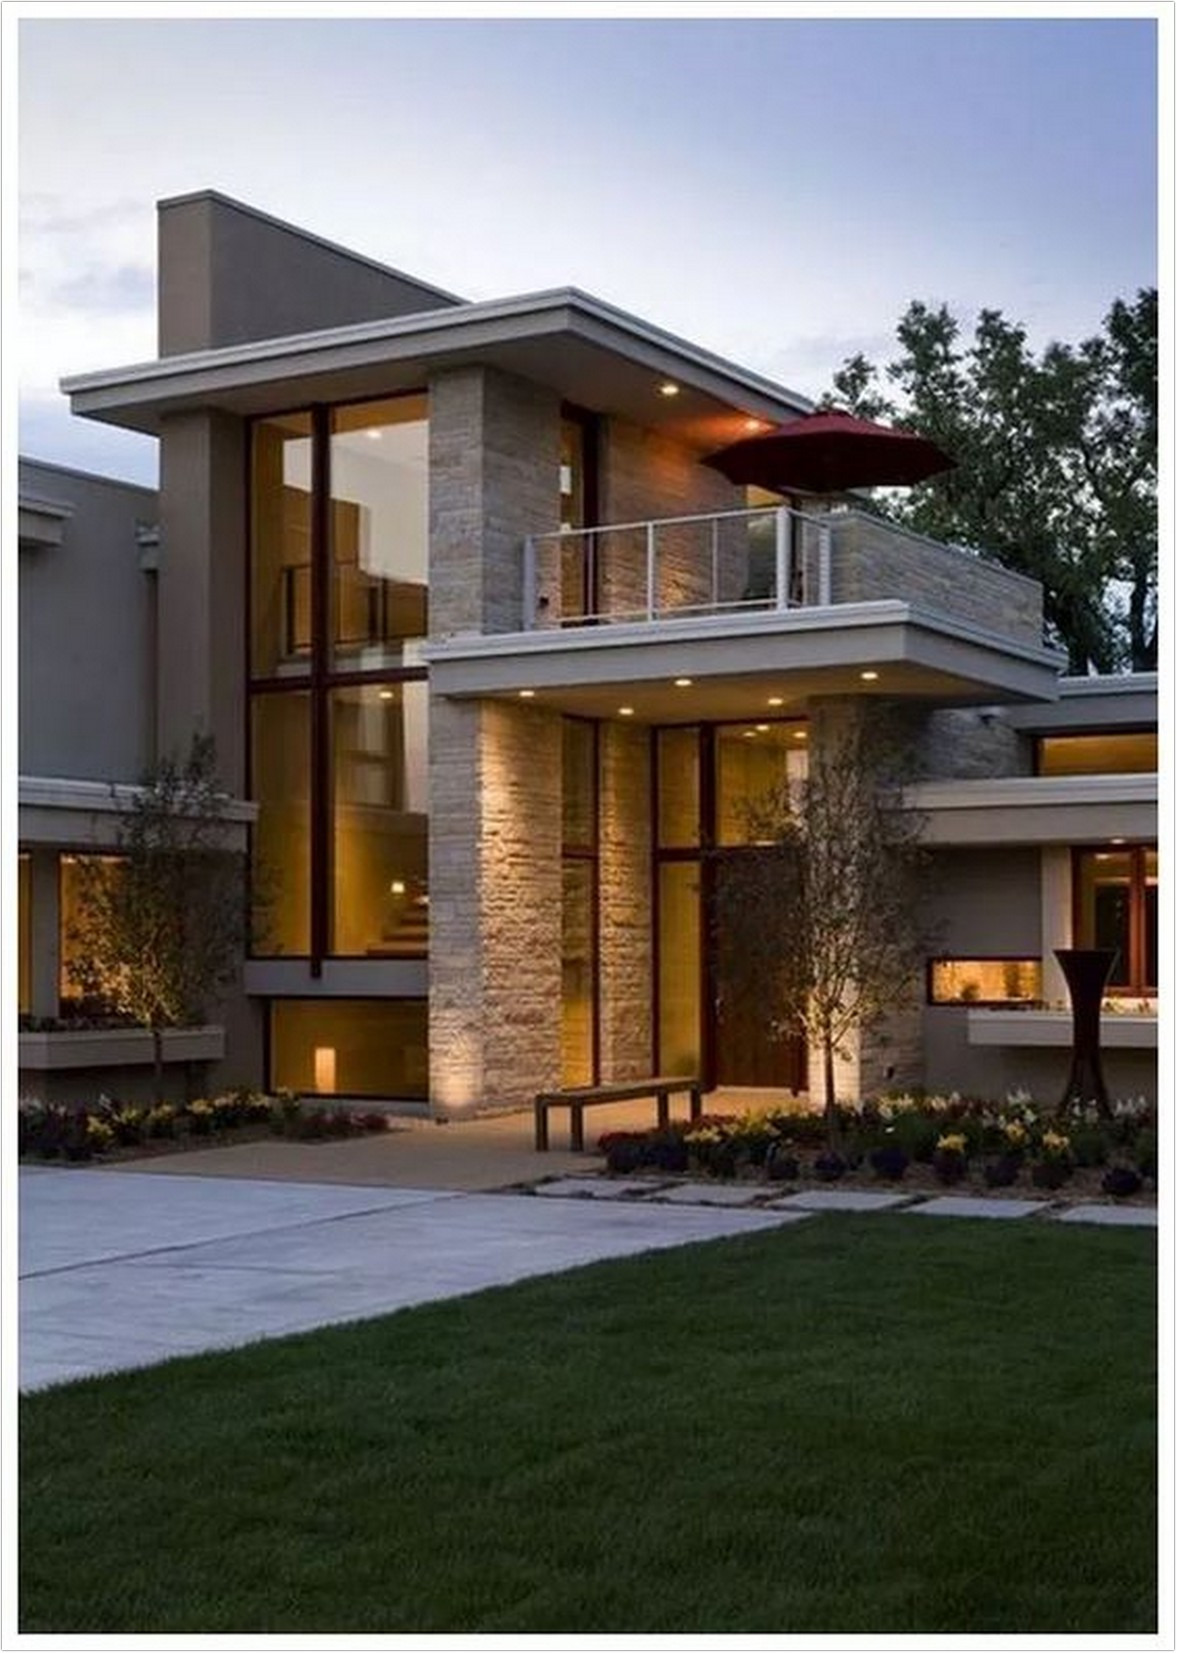 Latest Modern Home Designs Fresh 25 Special Edition Modern House Design for Your 2020